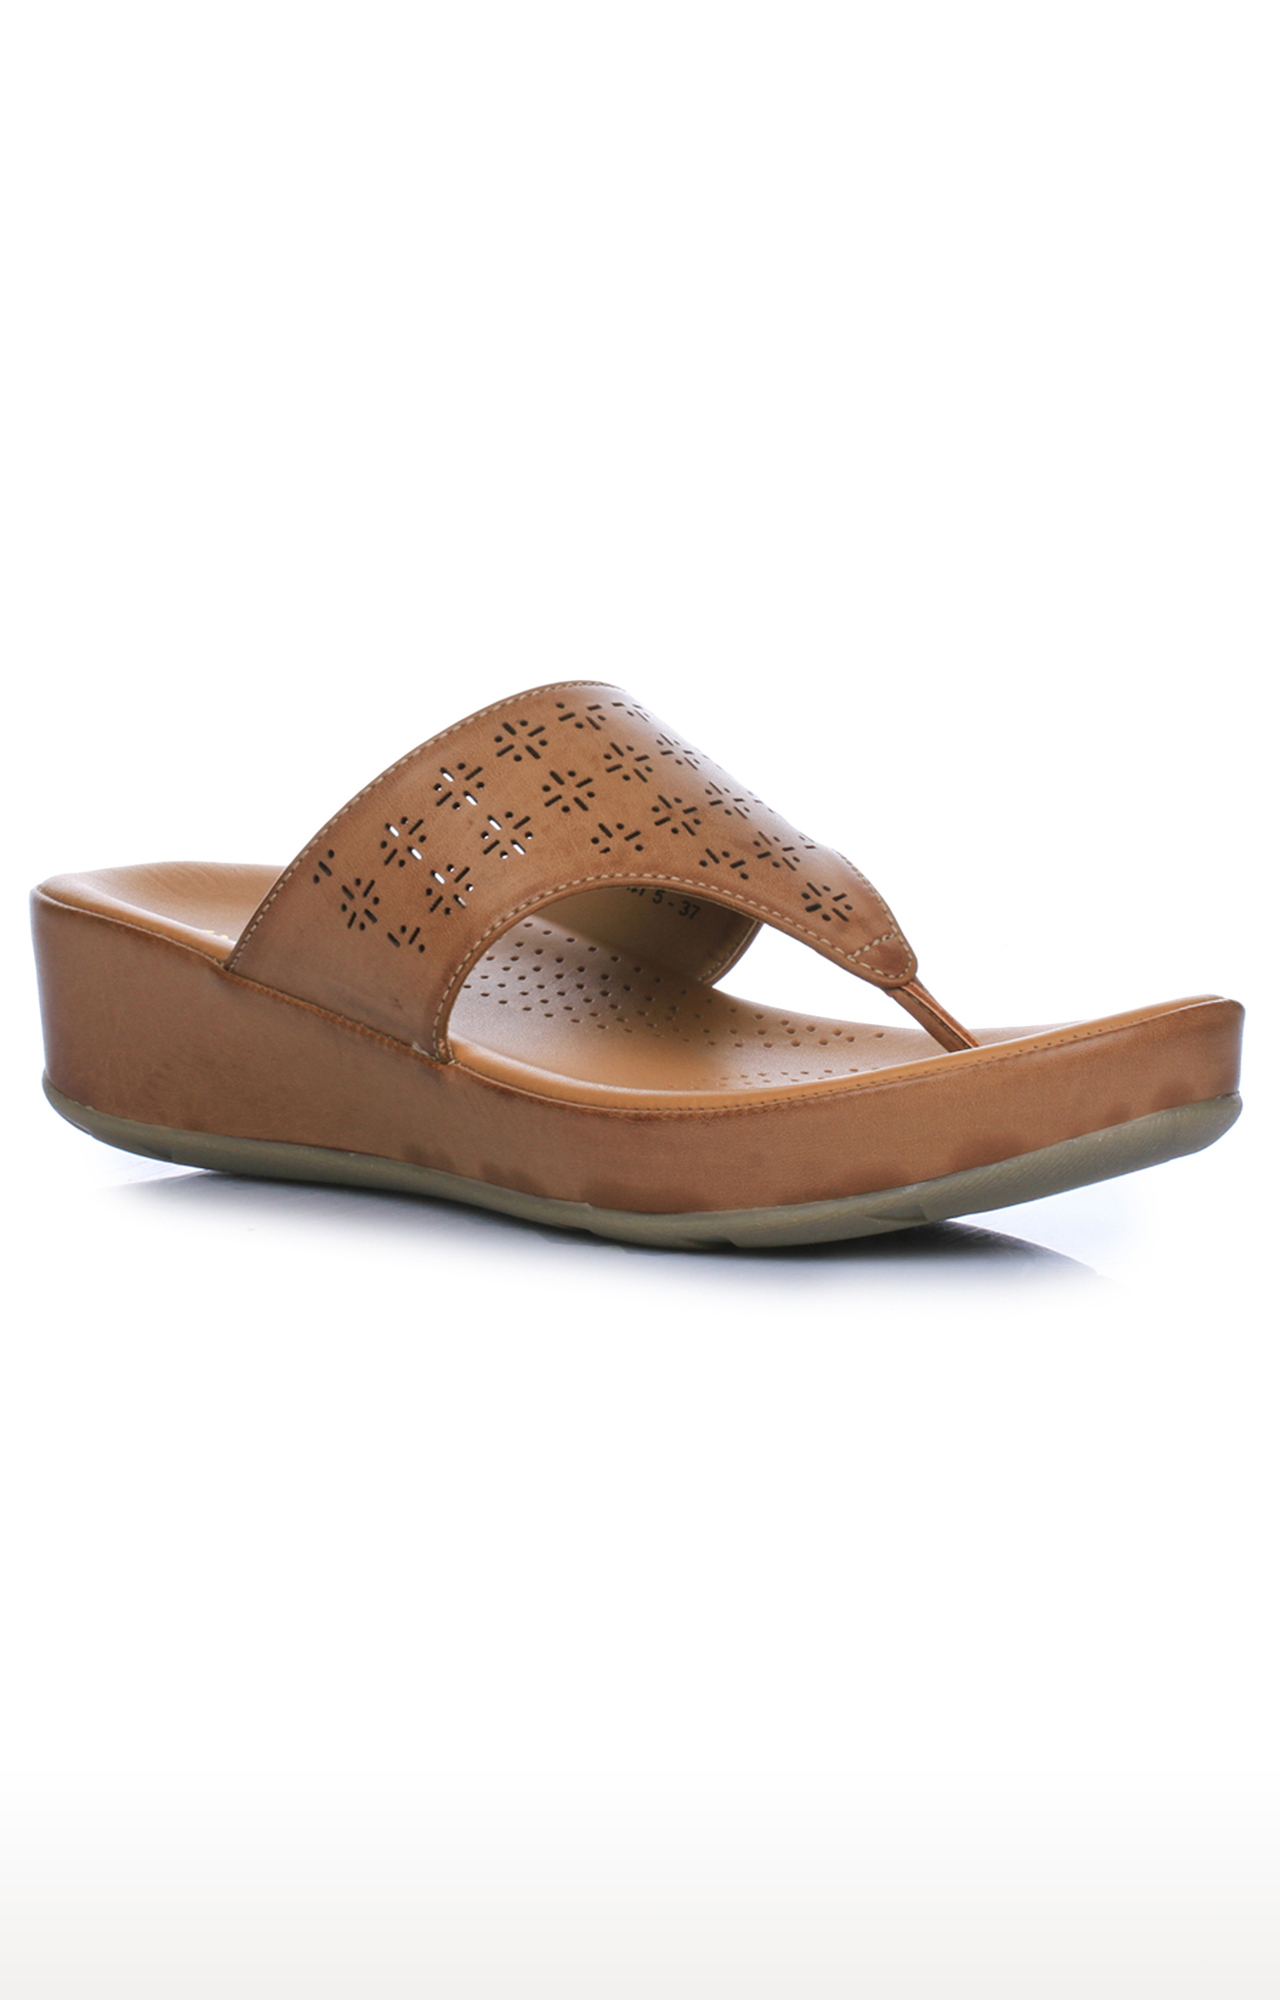 Liberty | Healers by Liberty Tan Sandals